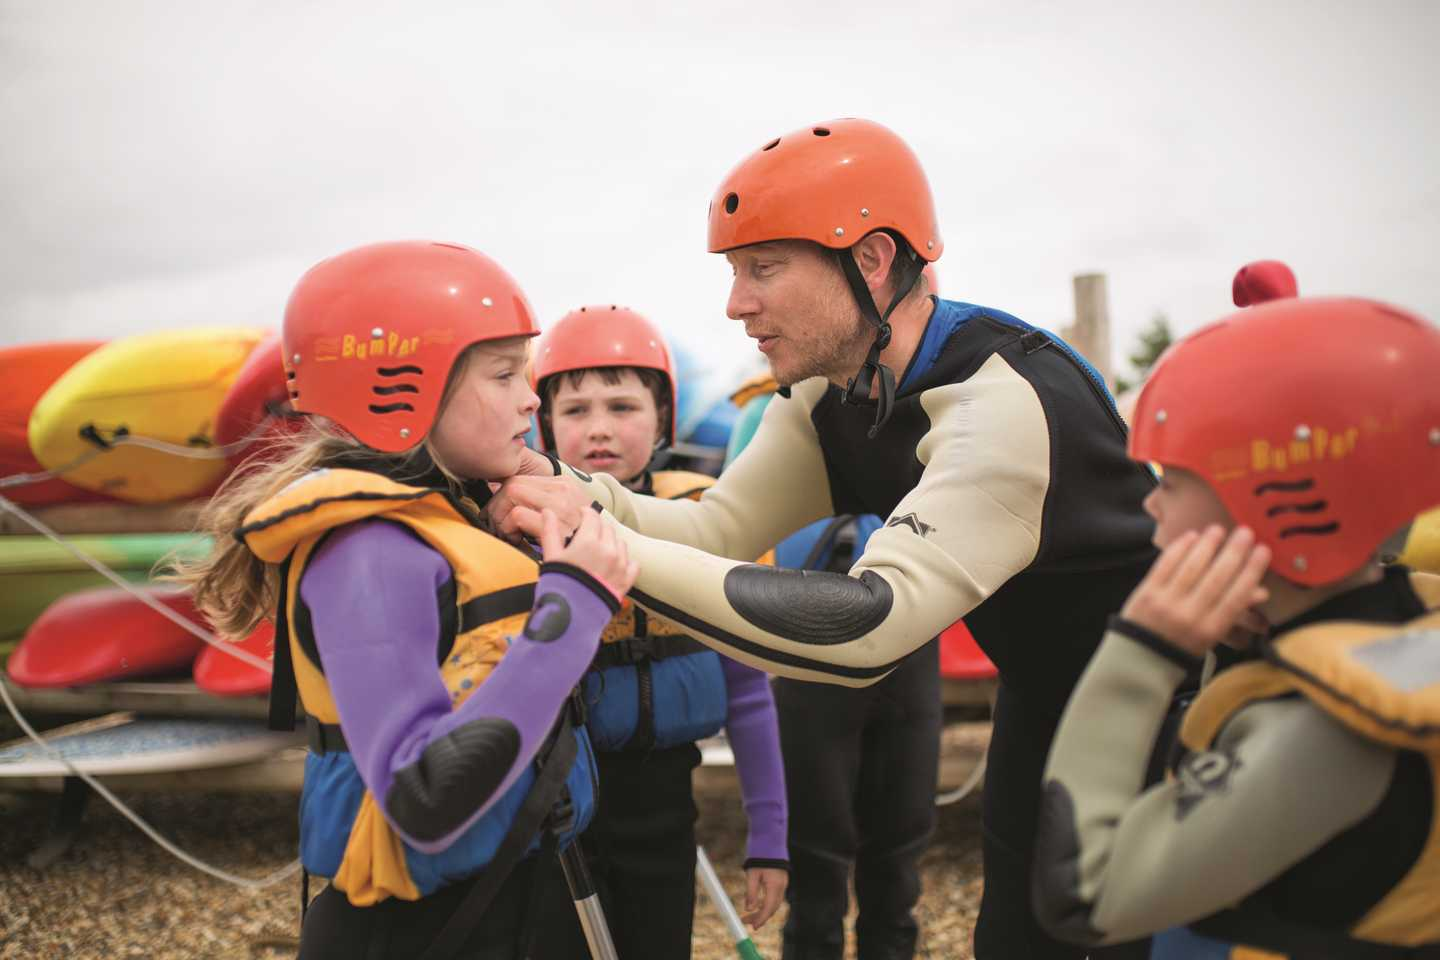 Kids getting ready for watersports